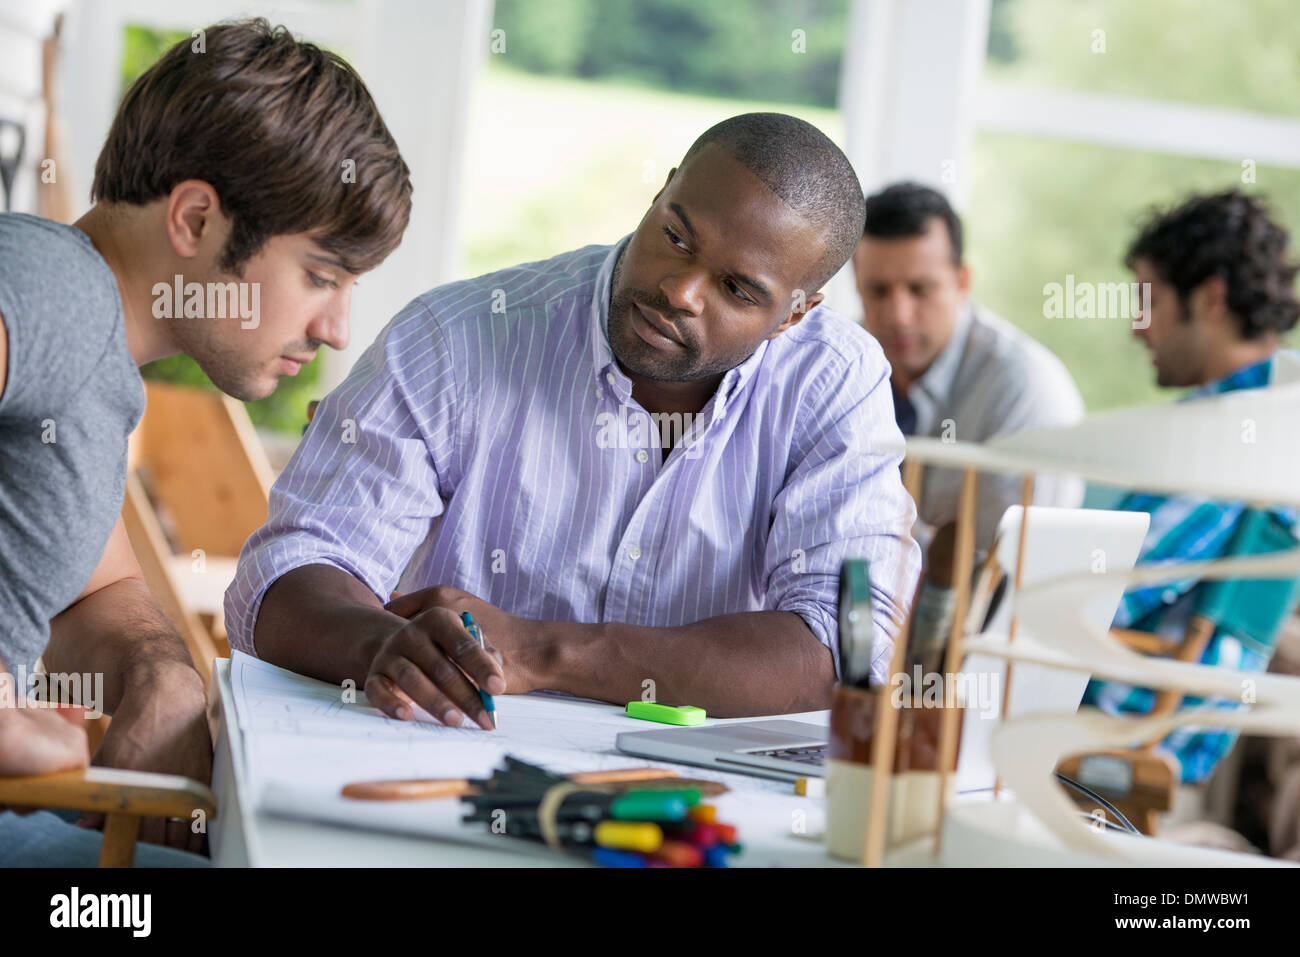 Two men seated one drawing on paper - Stock Image